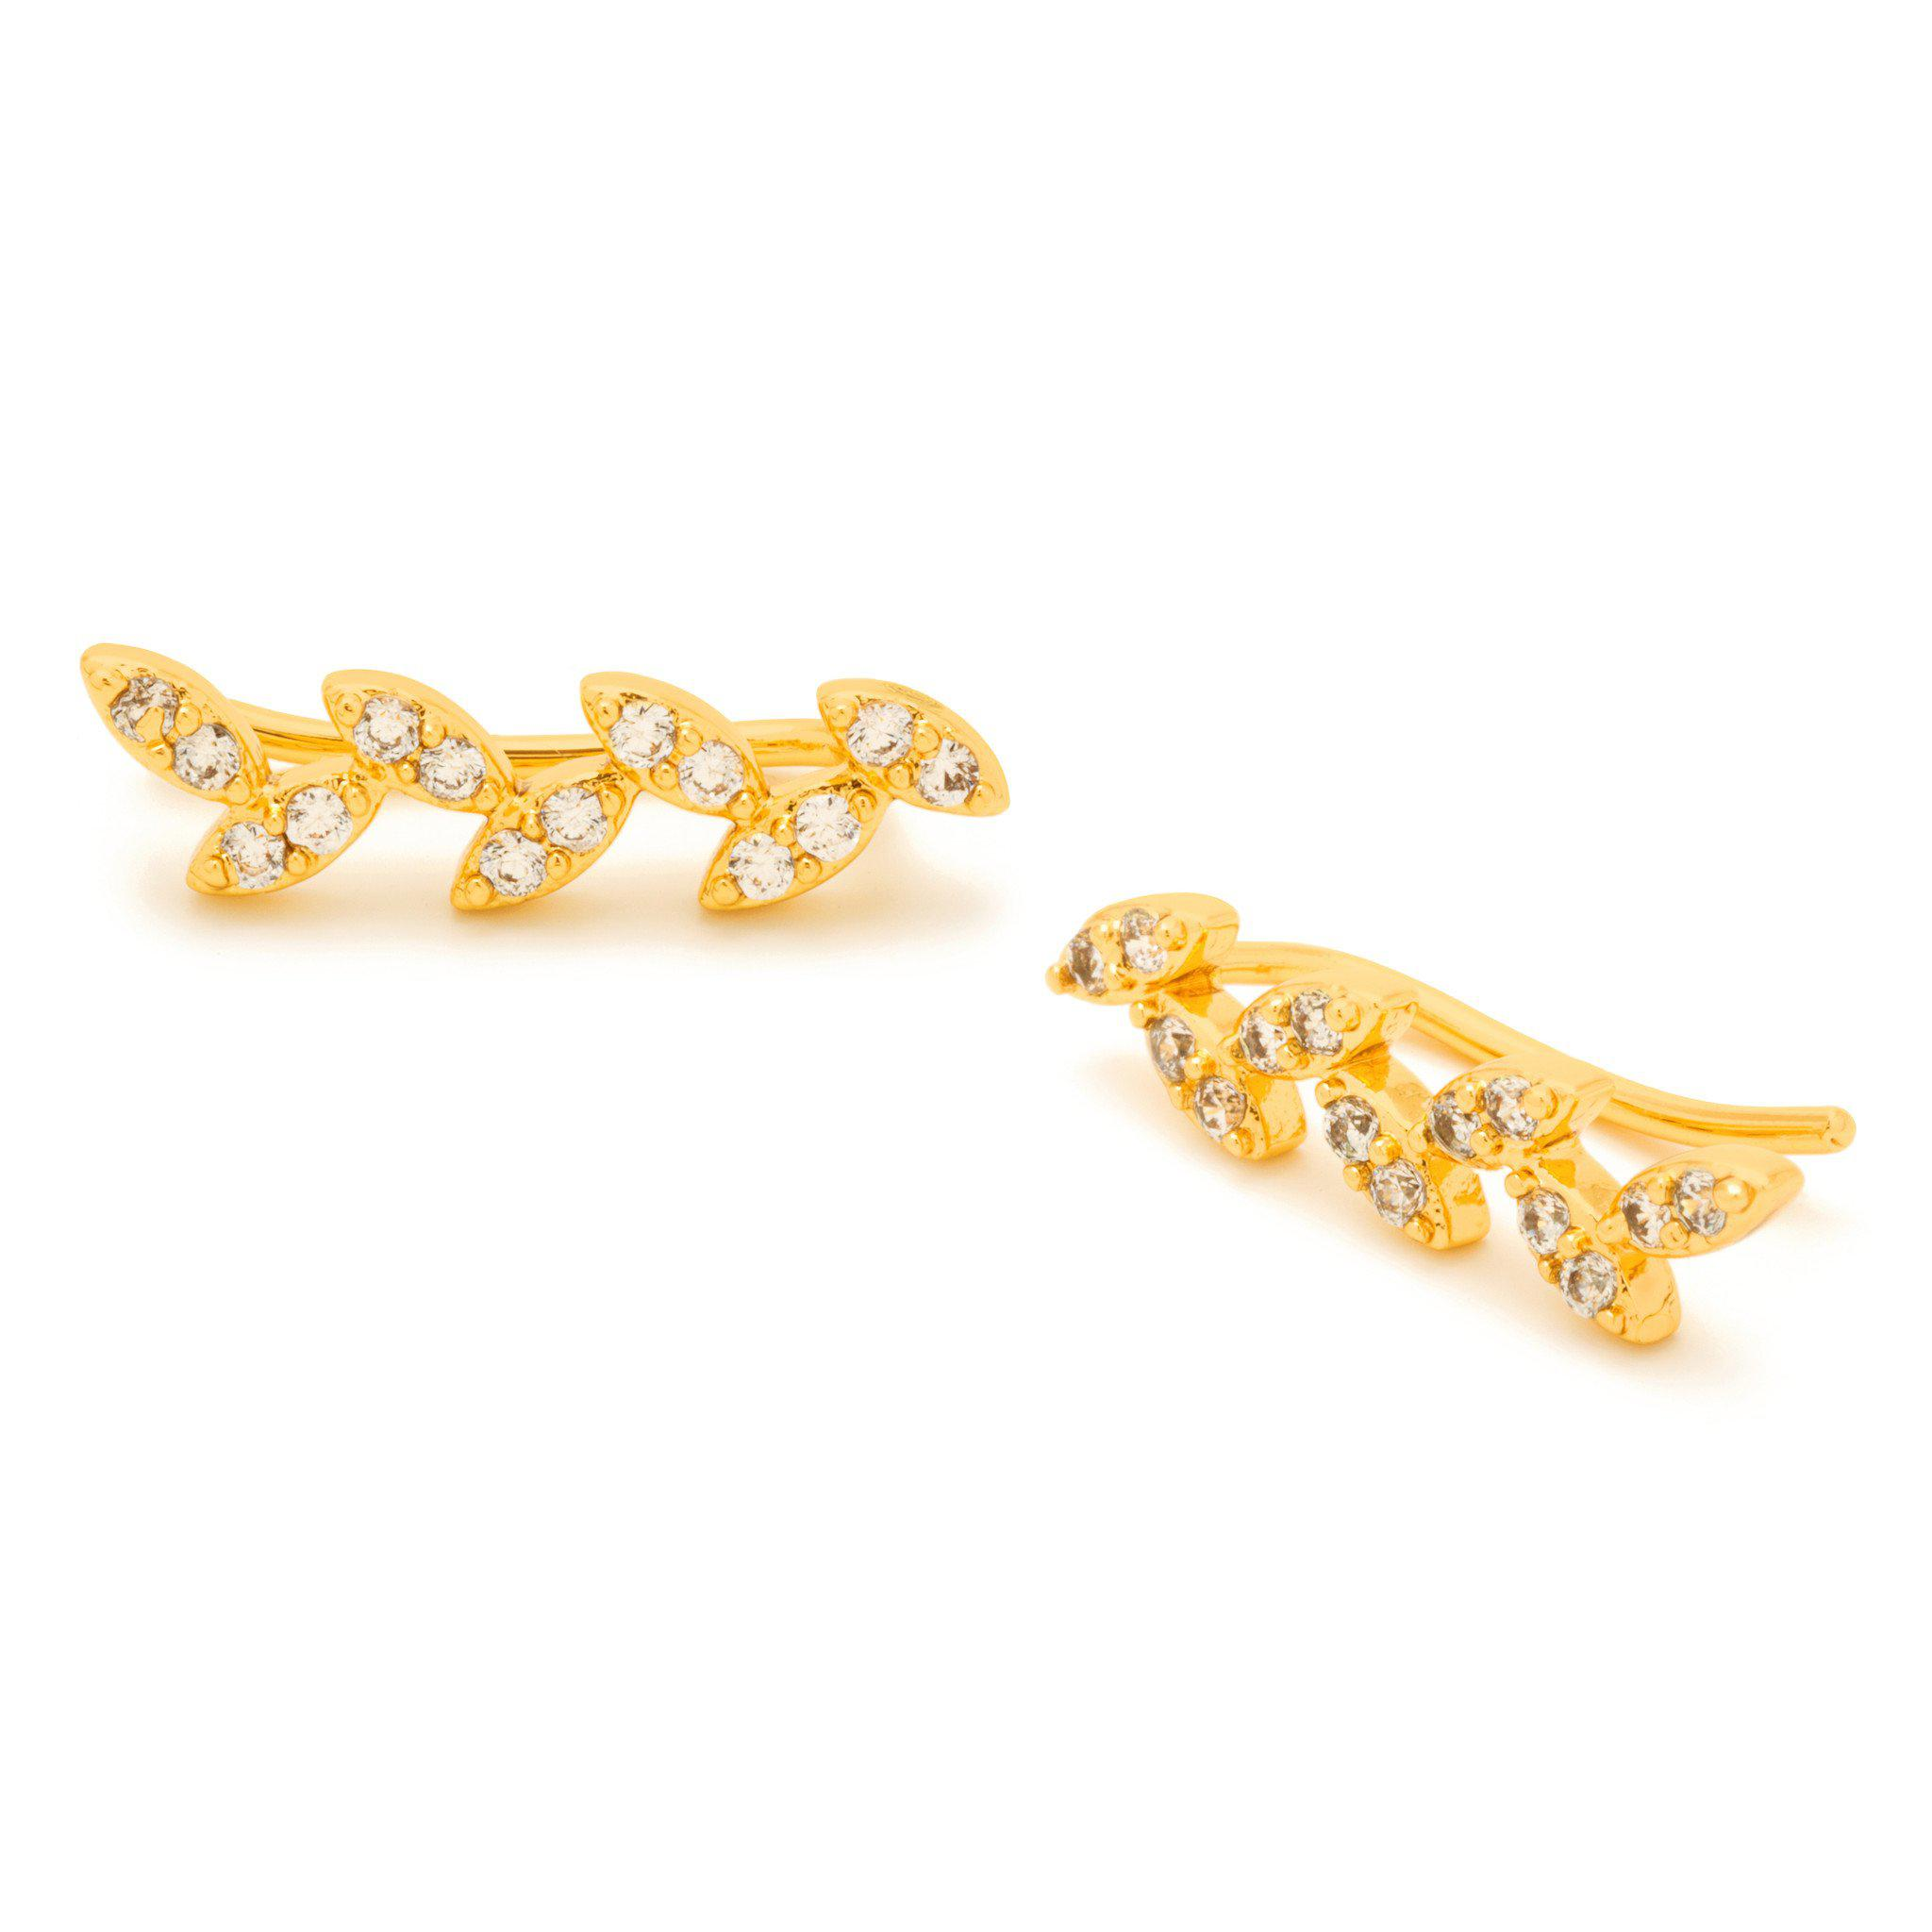 Olymia Ear Climber in Metallic Gold Gorjana maA5L